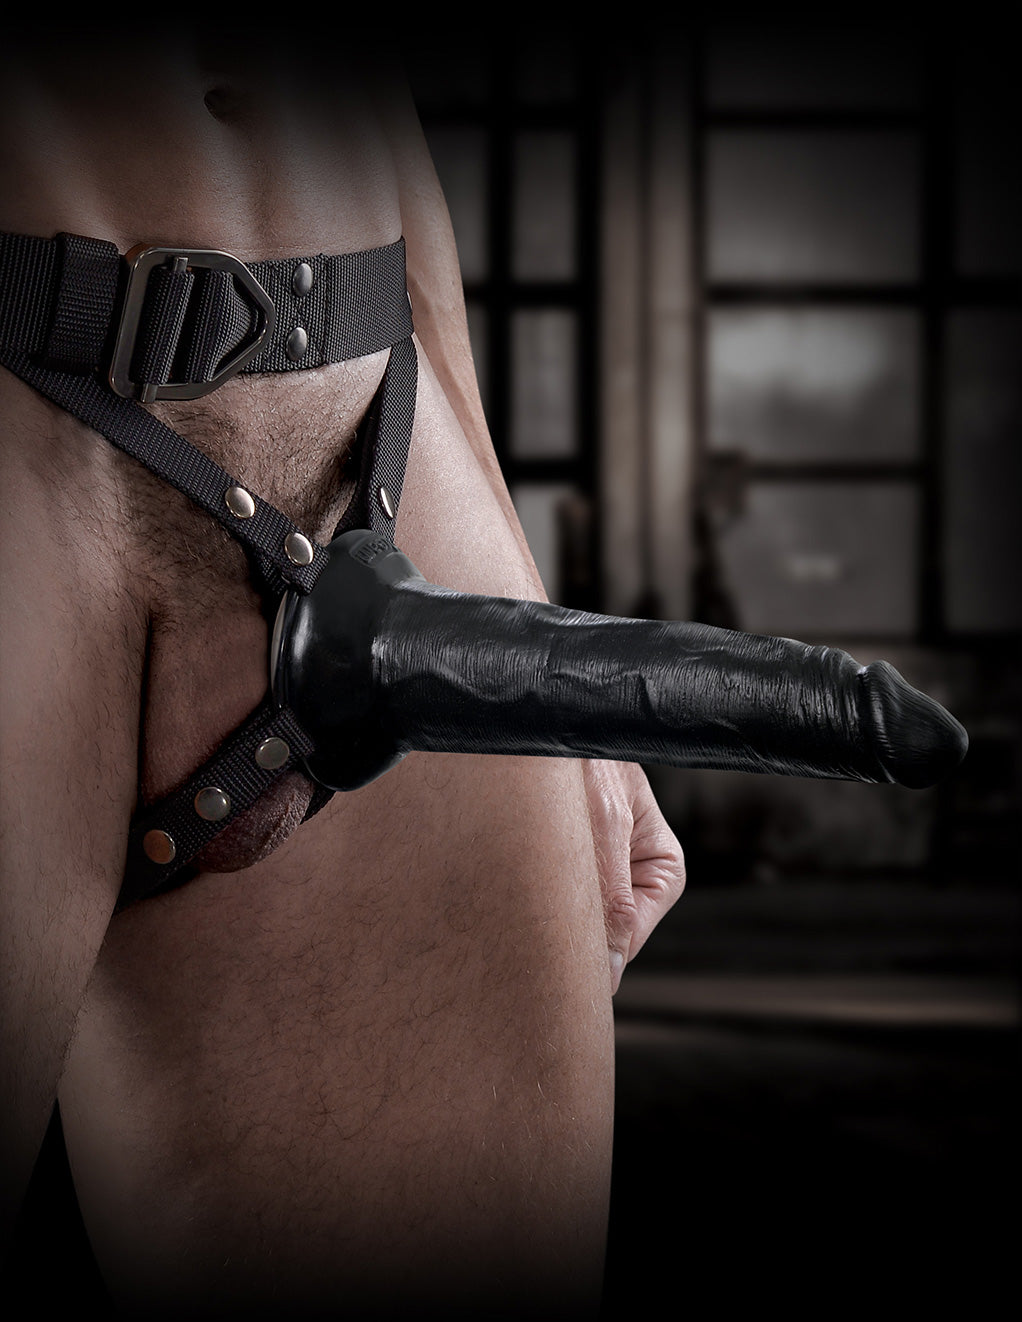 Command By Sir Richard's Harness with Hollow Strap-On